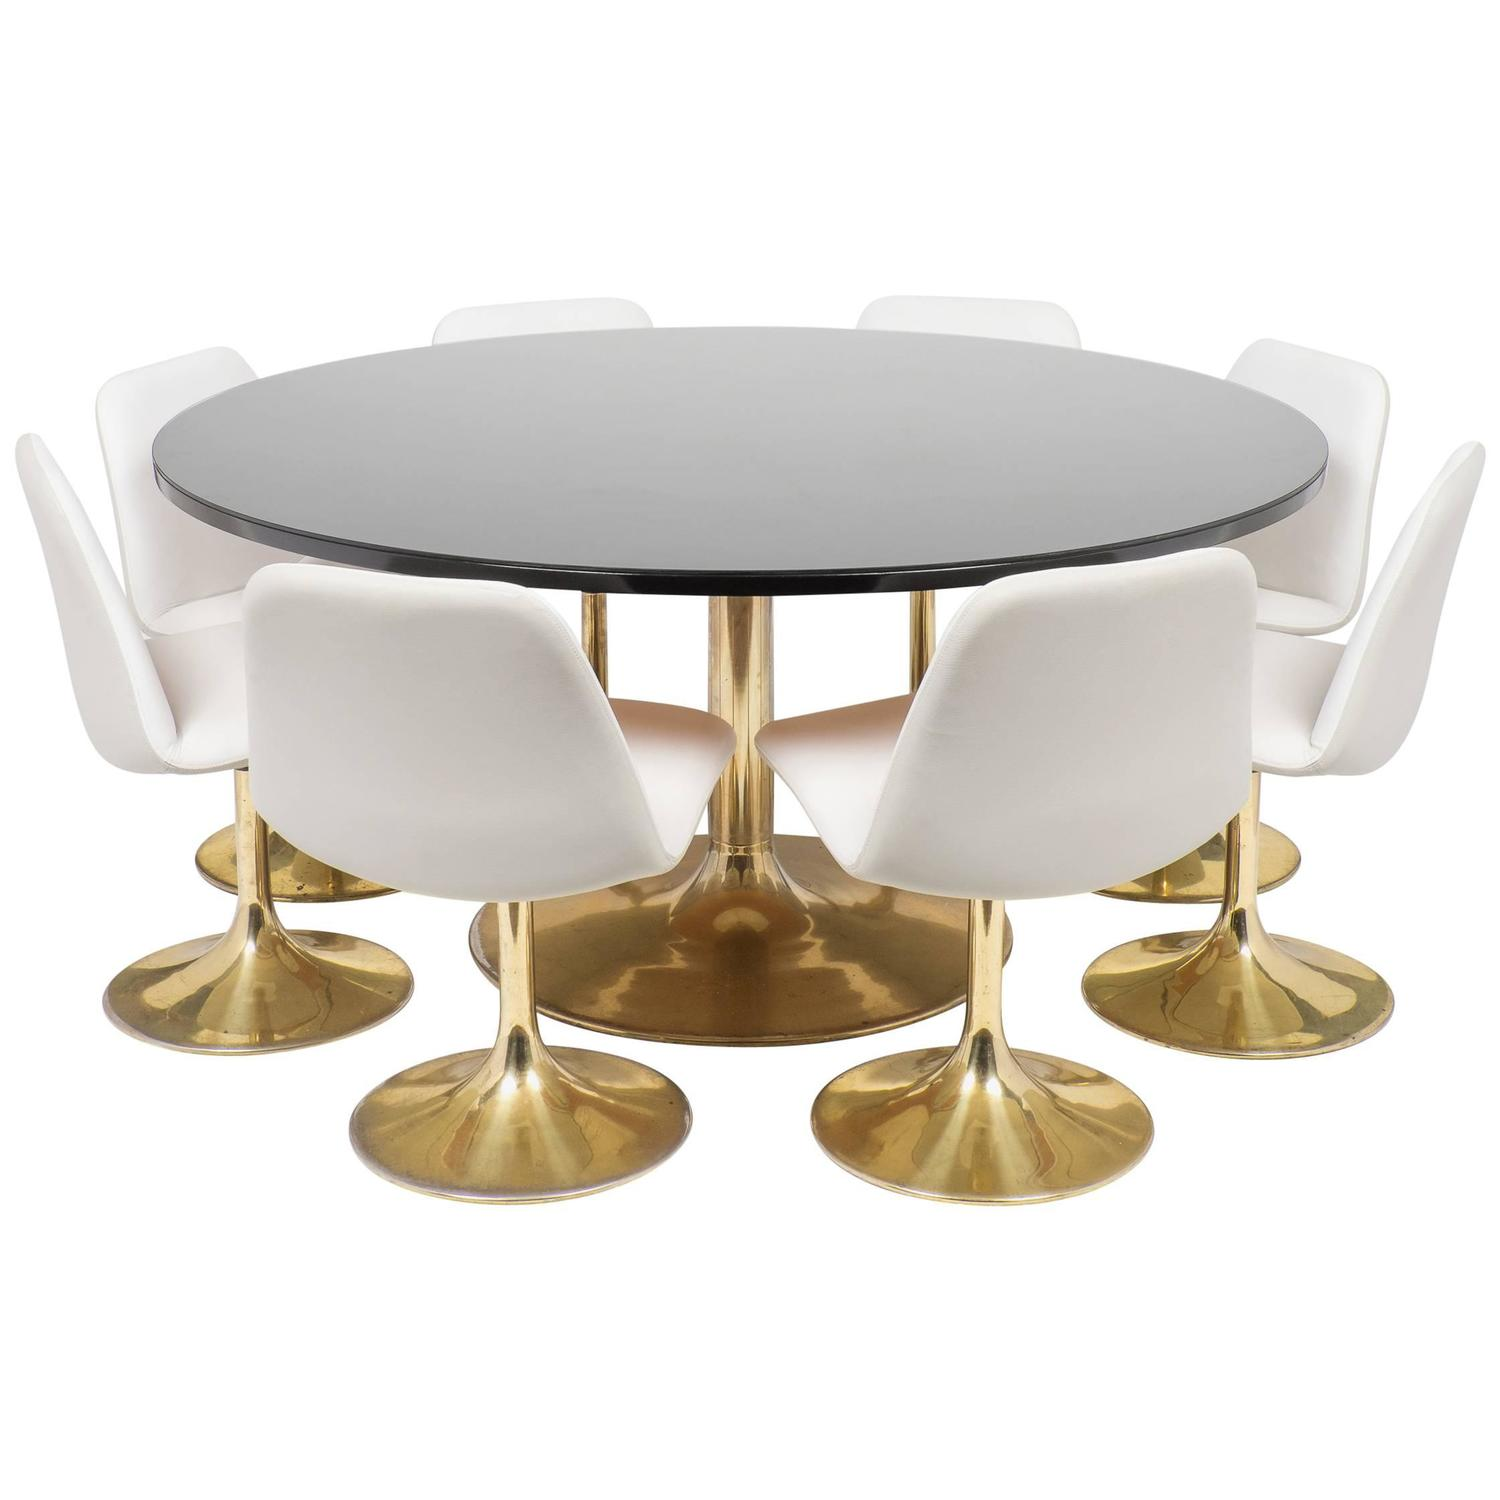 Tulip table and chair dining set at 1stdibs for Tulip dining table